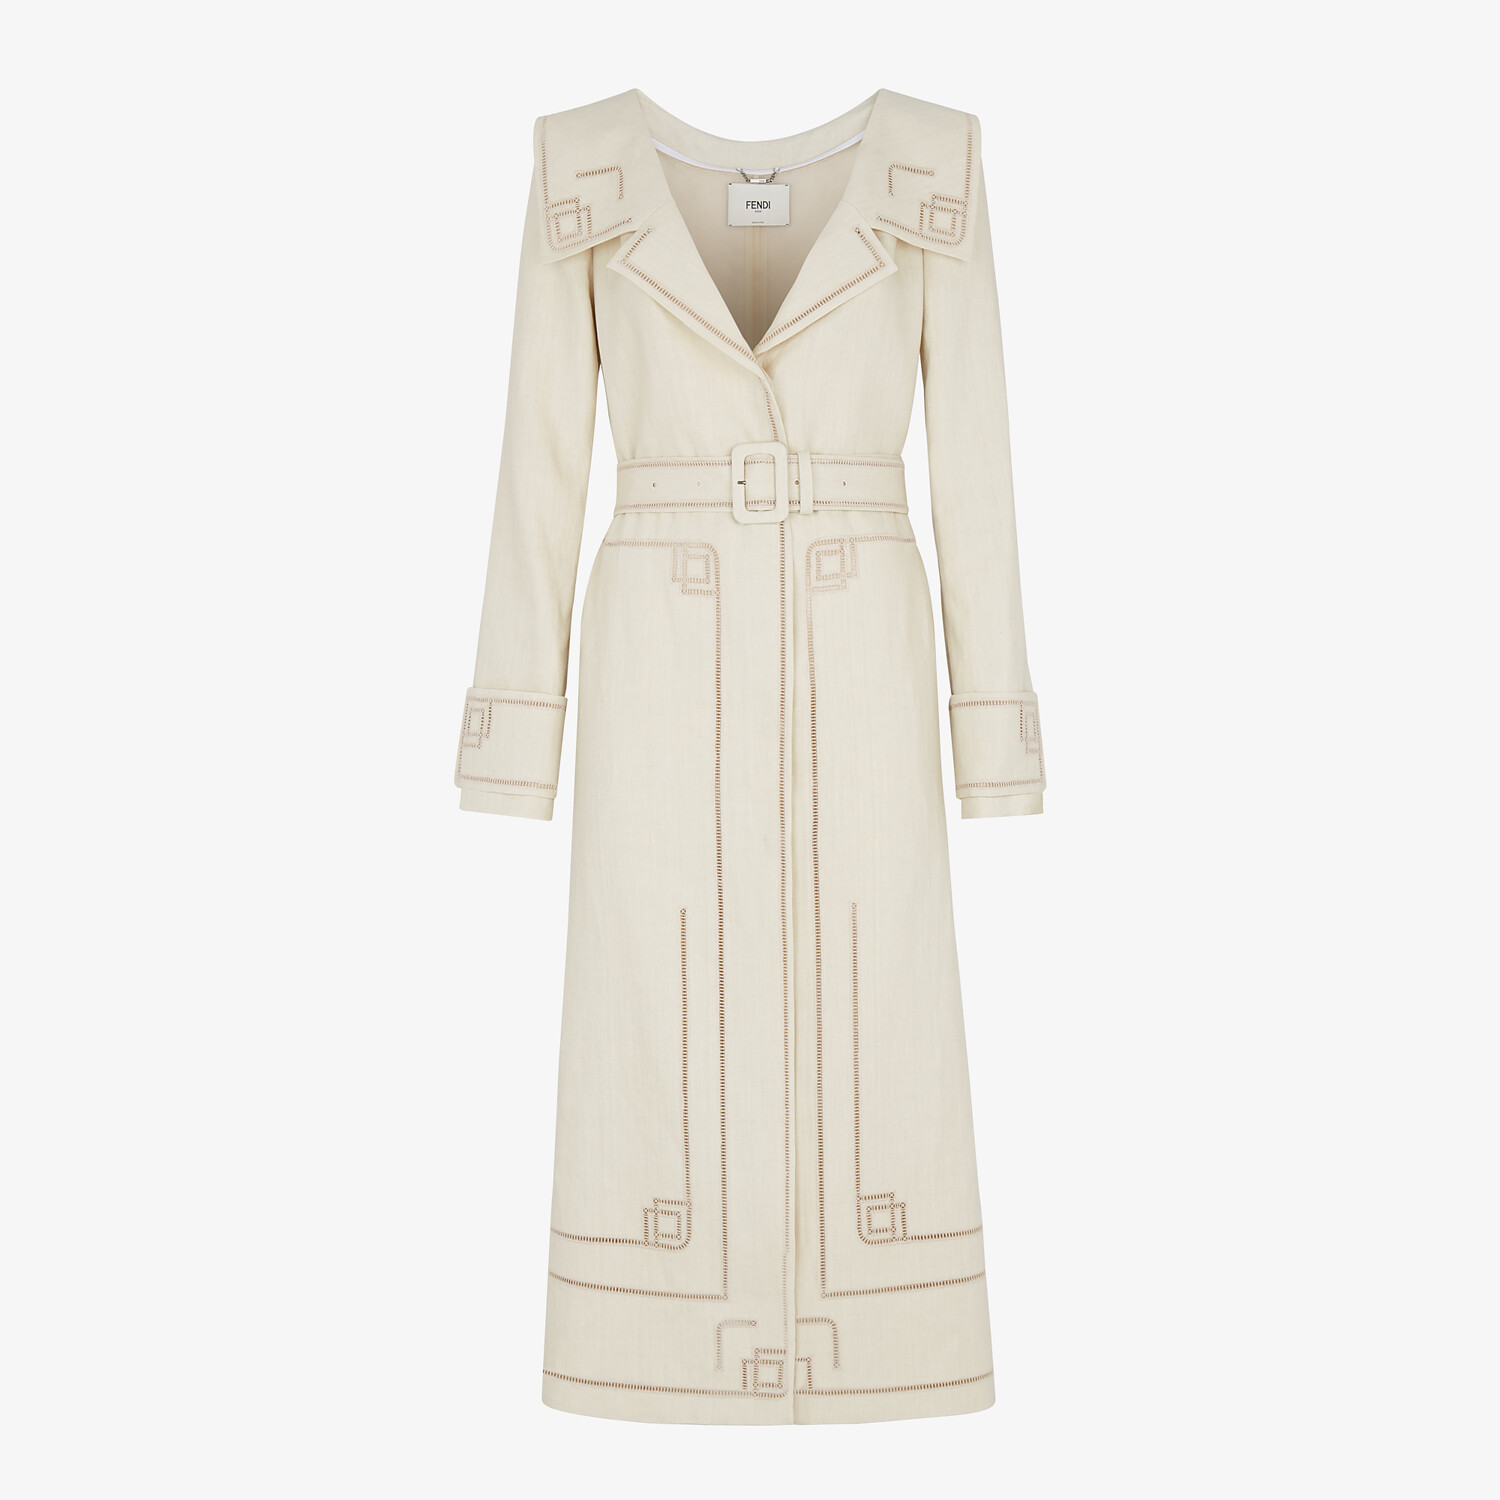 FENDI OVERCOAT - Beige linen trench coat - view 1 detail